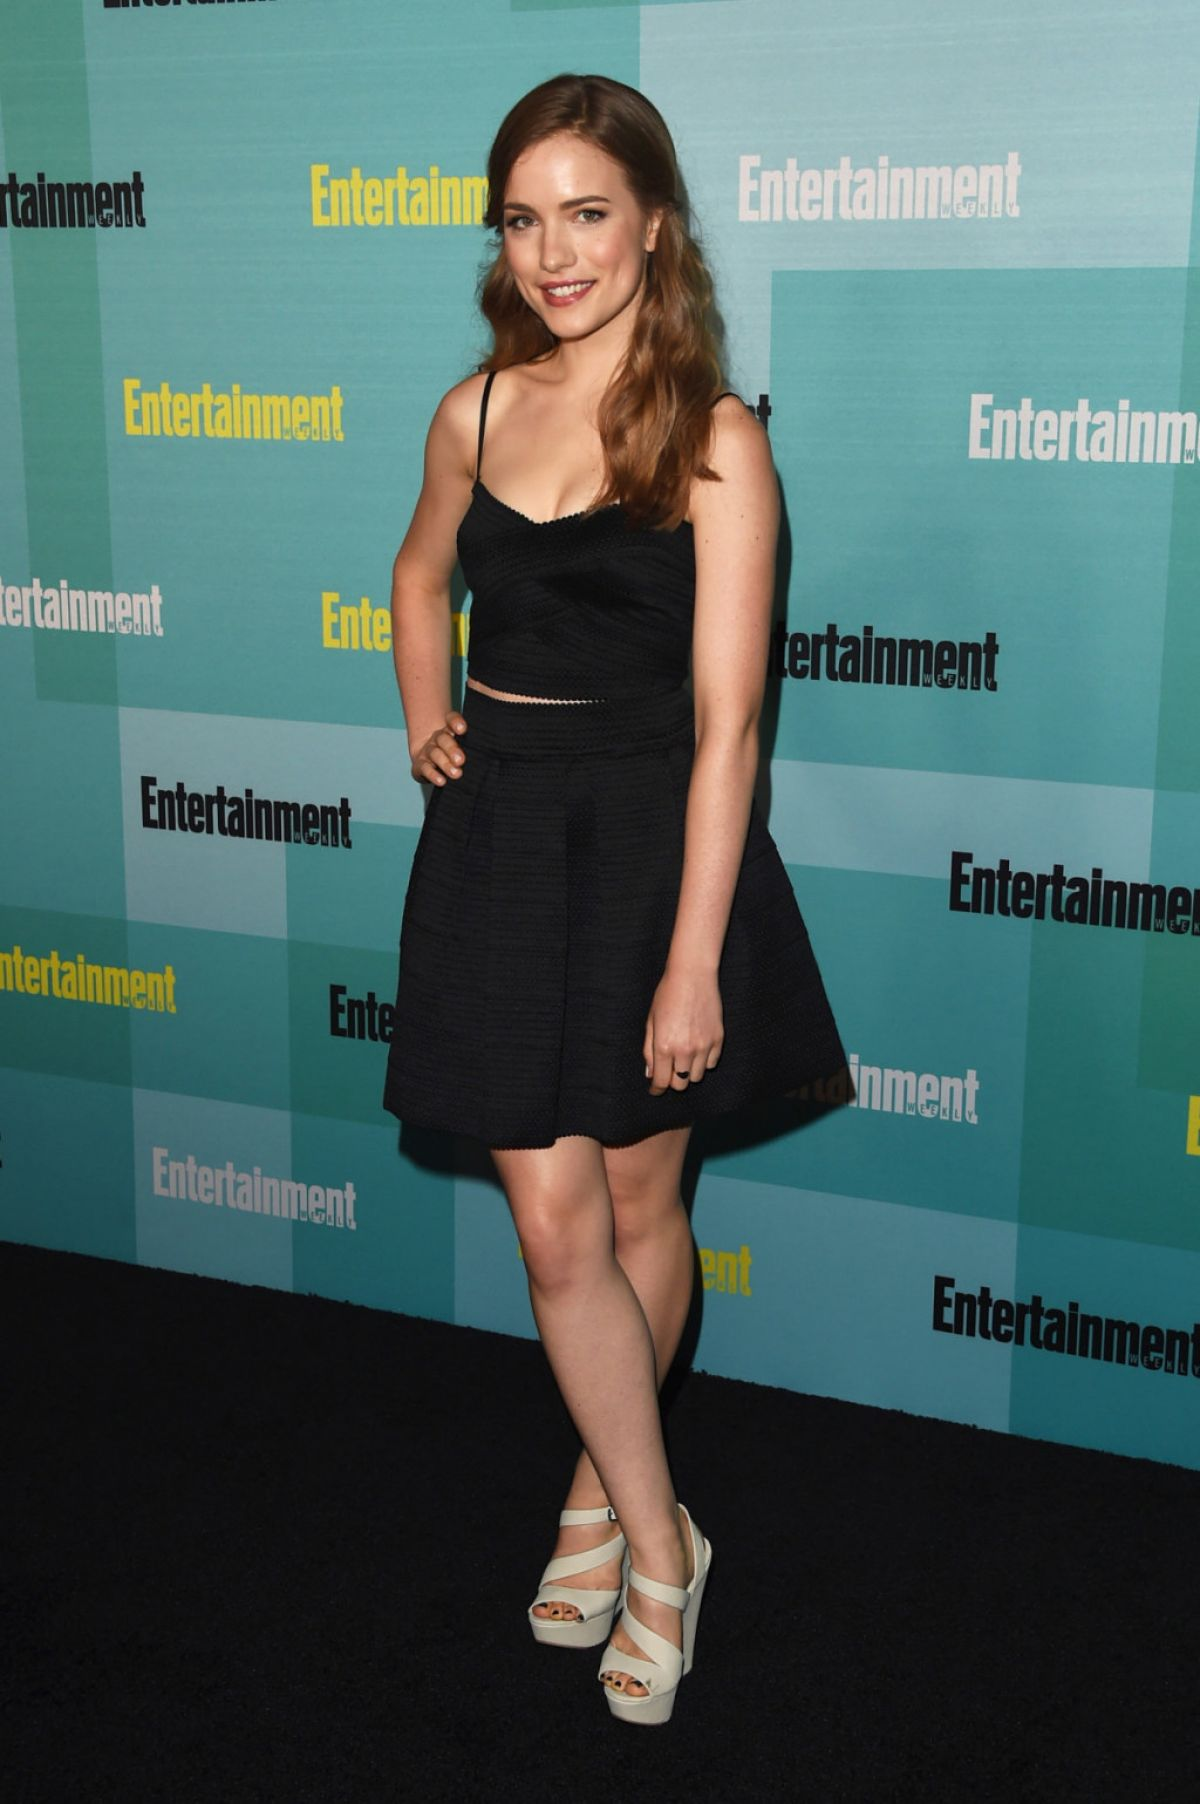 WILLA FITZGERALD at Entertainment Weekly Party at Comic-con in San Diego